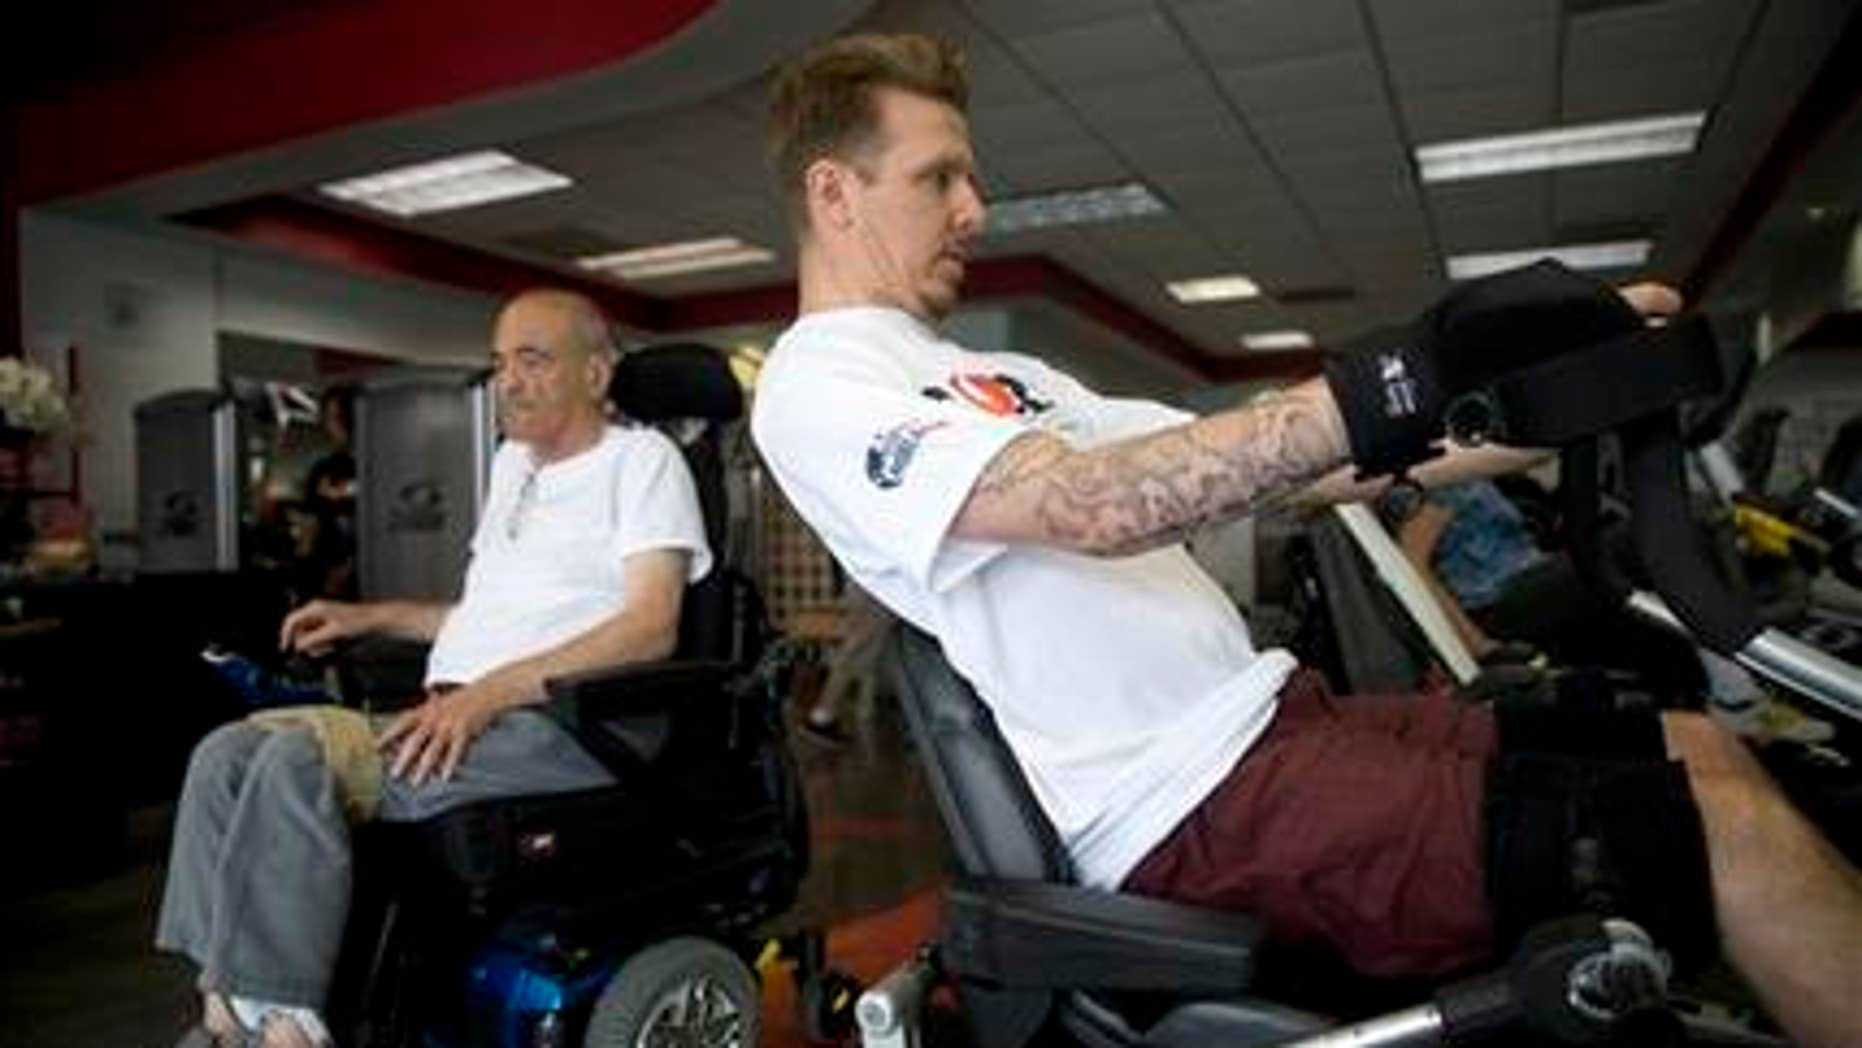 May 5, 2015: In this photo, Aaron Baker, right, a former motocross racer who was paralyzed from the neck down in a crash while practicing on a motocross track in 1999, exercises at the Center of Restorative Exercise in the Northridge section of Los Angeles.